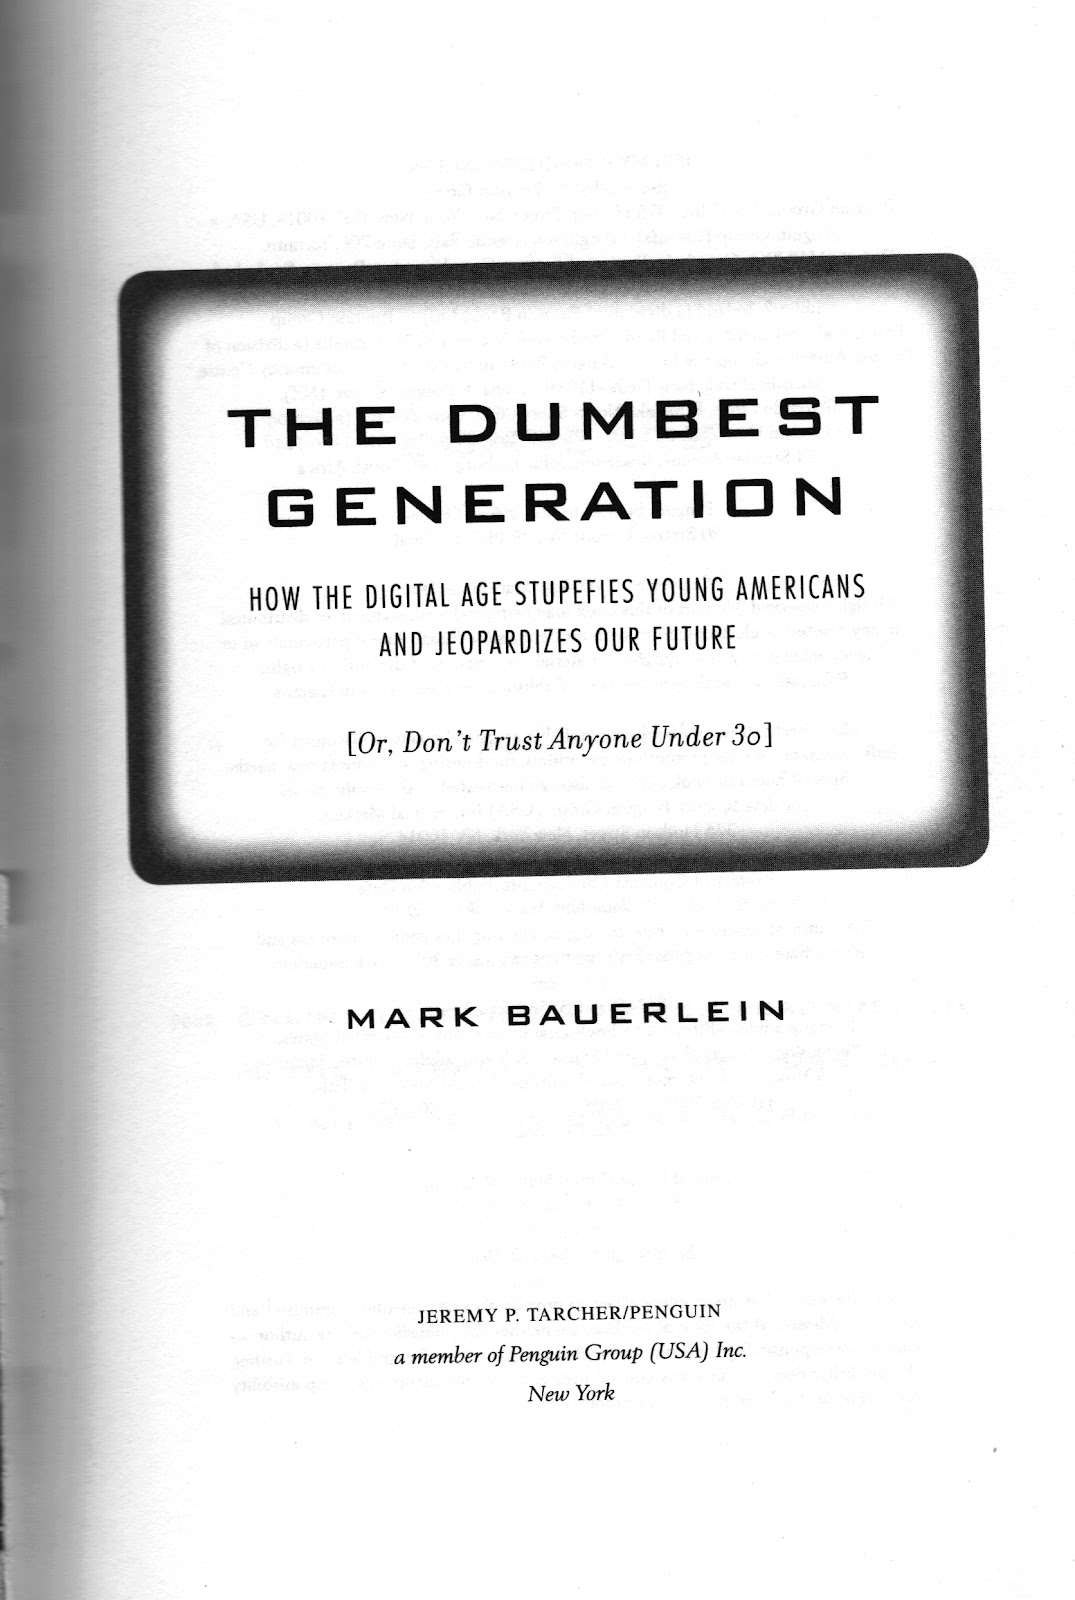 the dumbest generation The dumbest generation essay uploaded by basesmith on dec 06, 2011 techno-logical youth read a book, our nation depends on it technology is making you and me stupid.